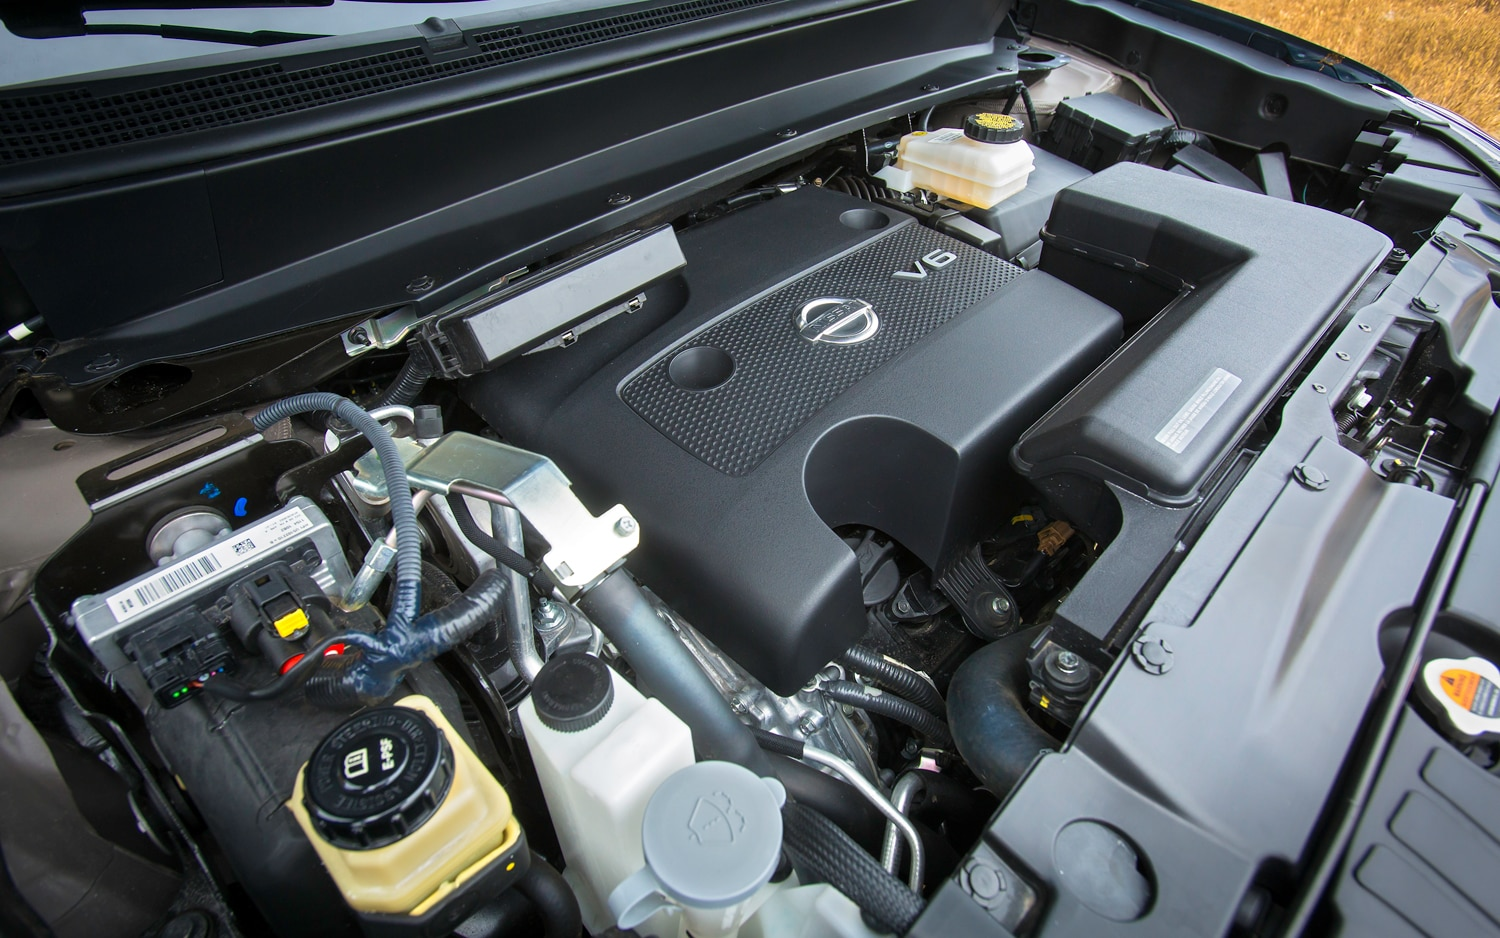 2013 Nissan Pathfinder Engine Bay